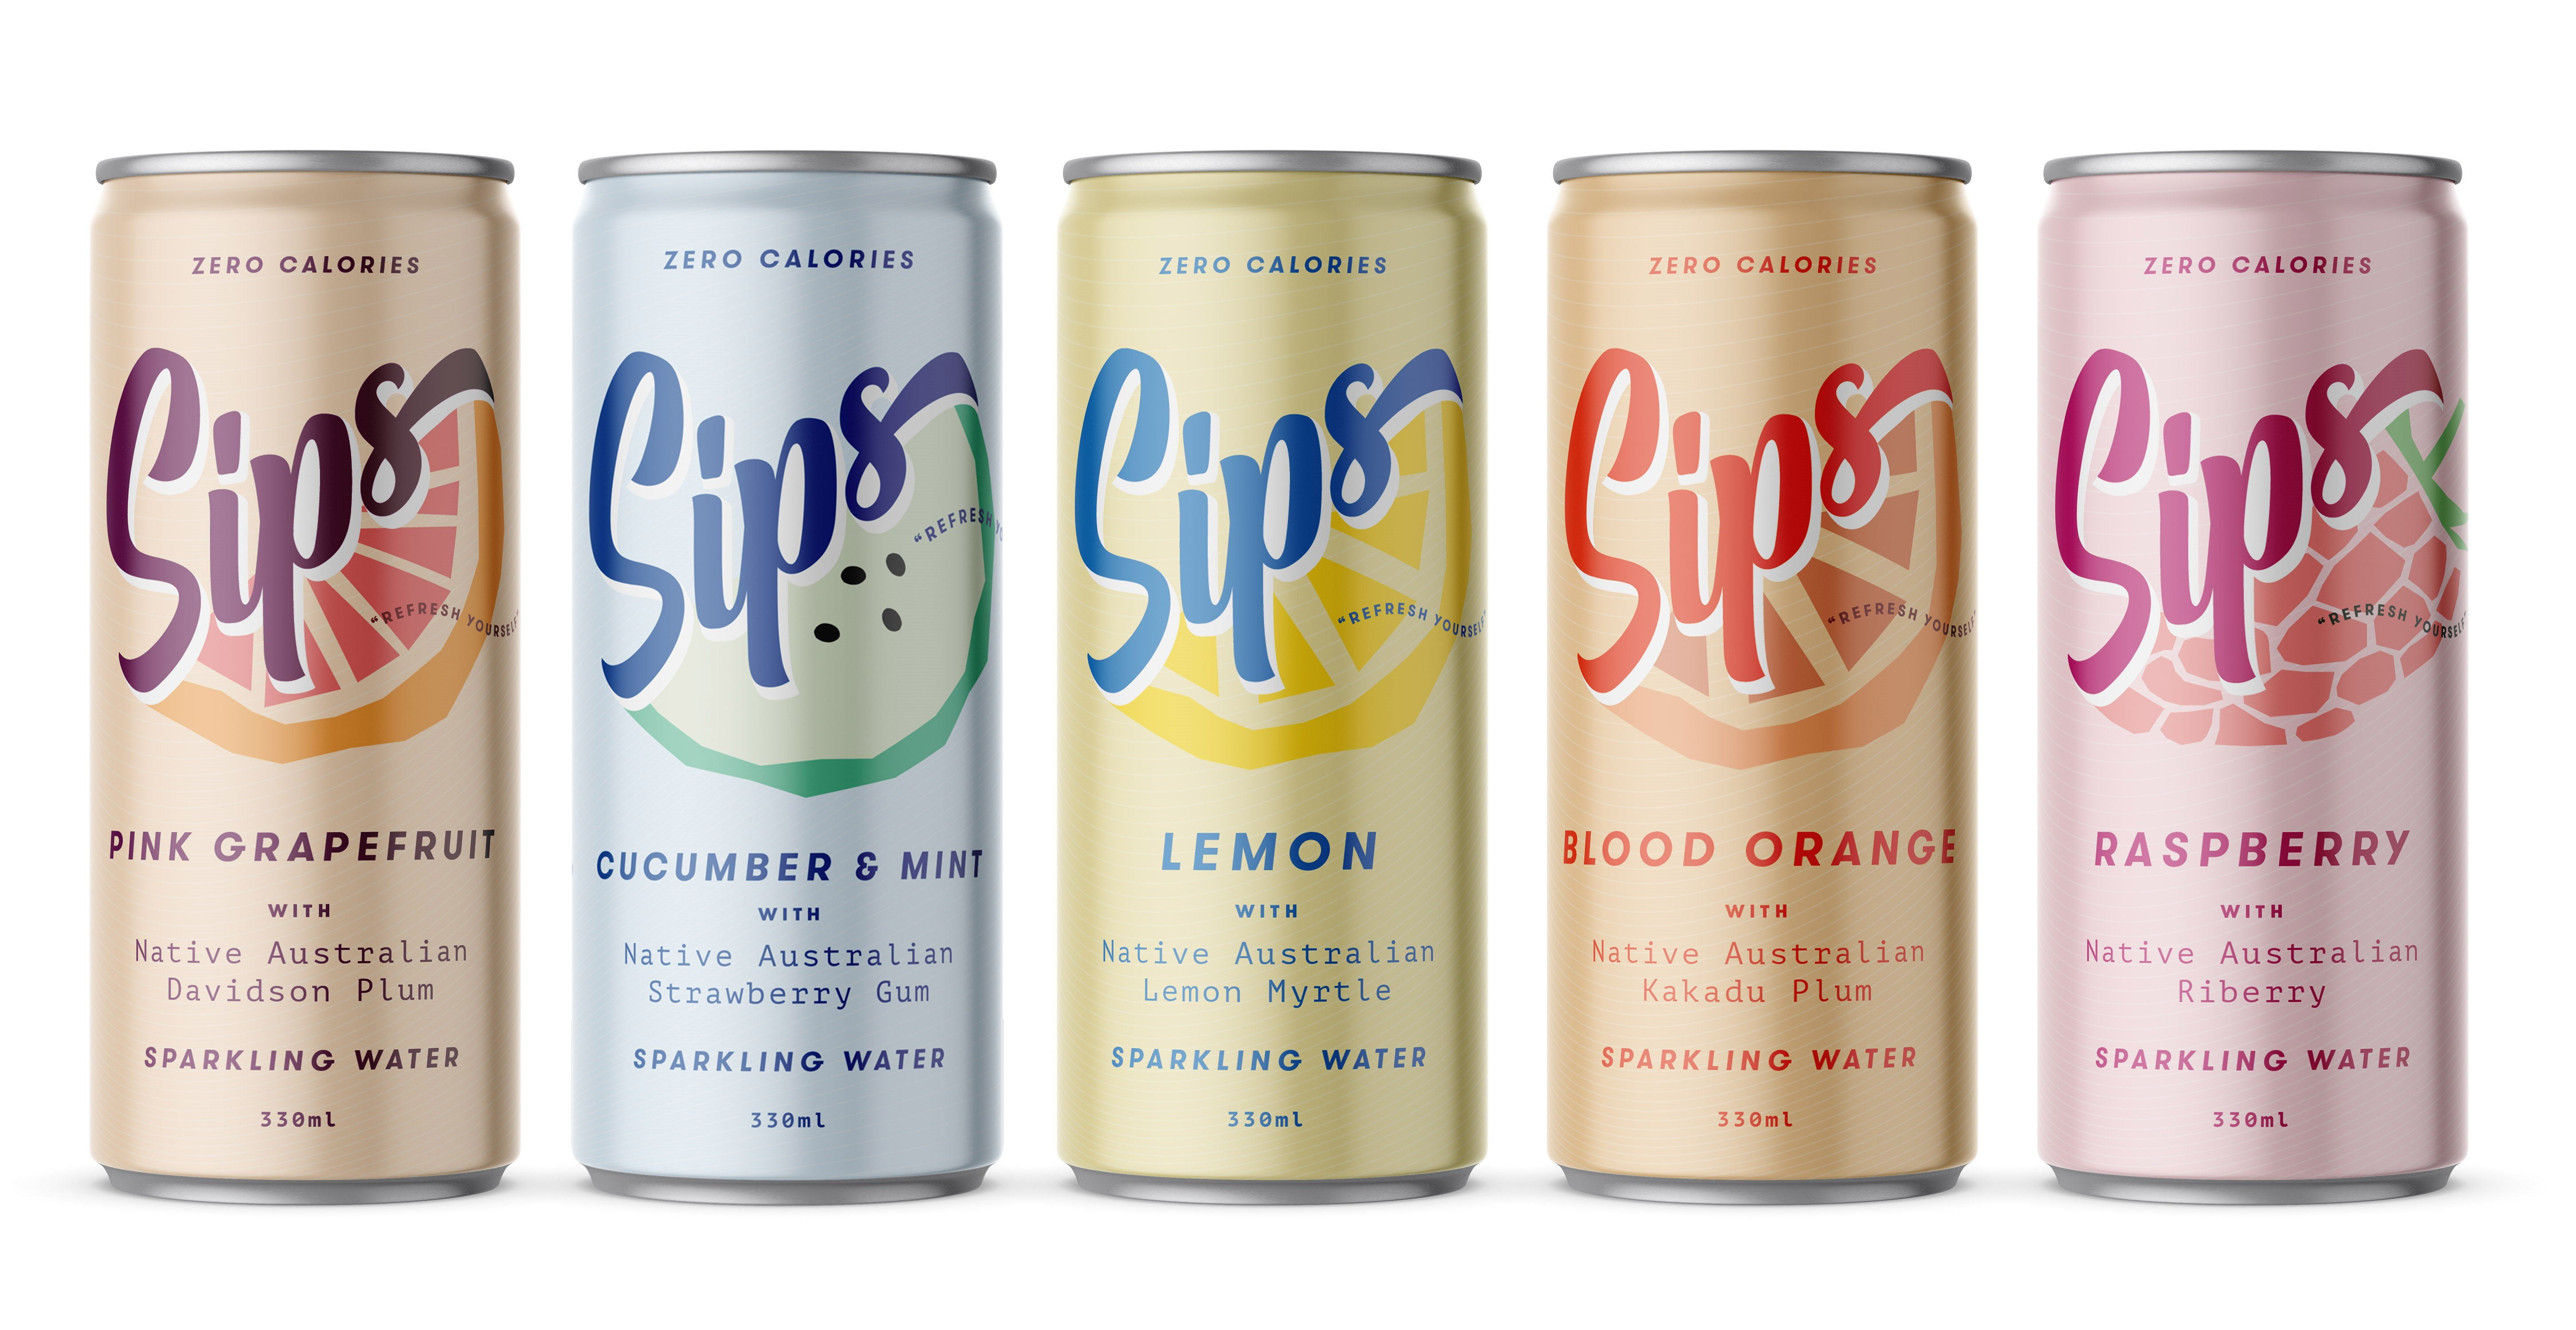 Cans of Sips sparkling water in pink grapefruit, cucumber & mint, lemon, blod orange, and raspberry